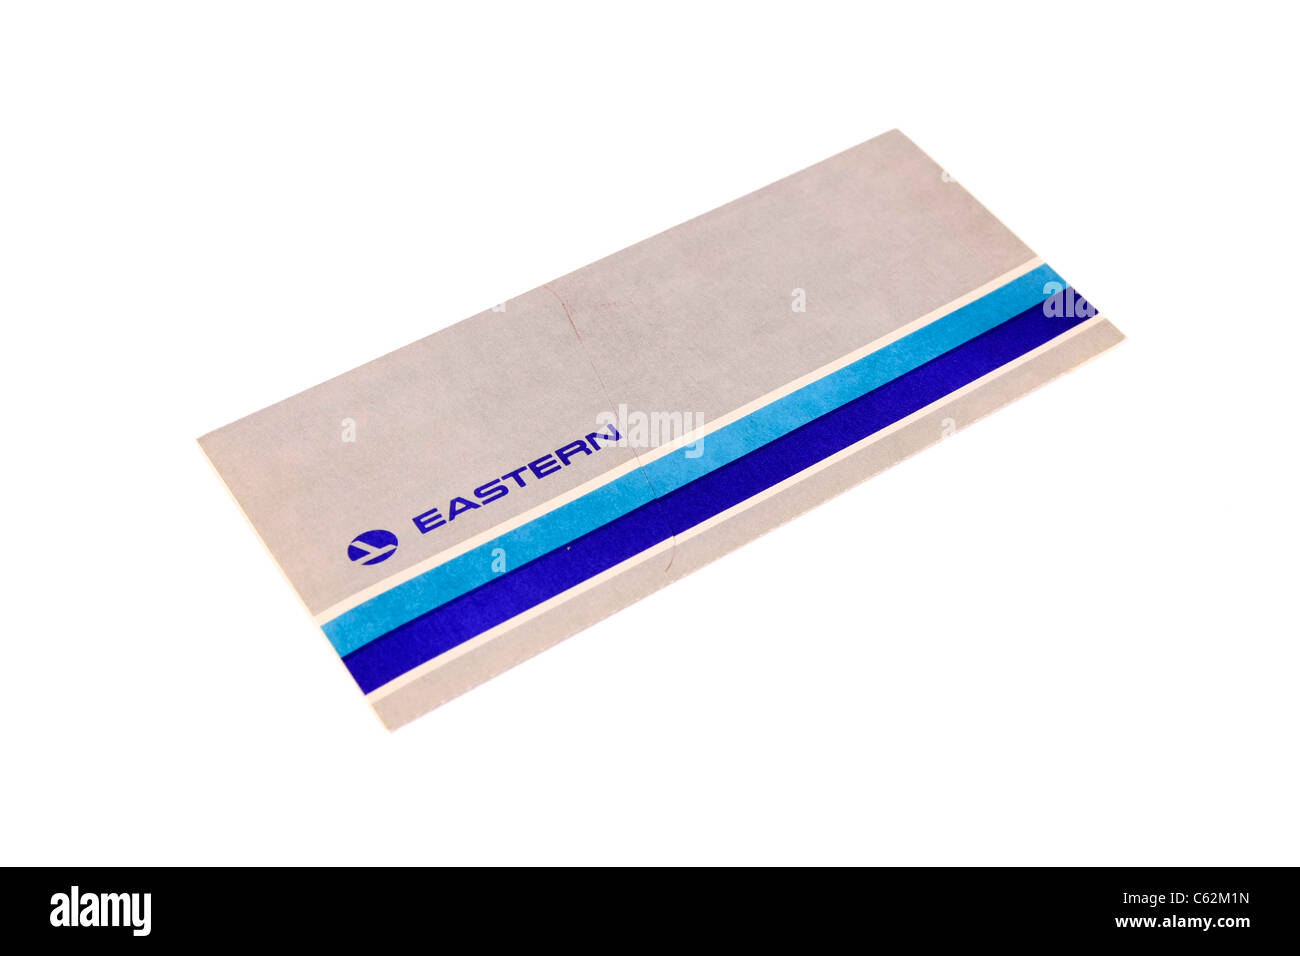 American Eastern Airlines Flight ticket - Stock Image